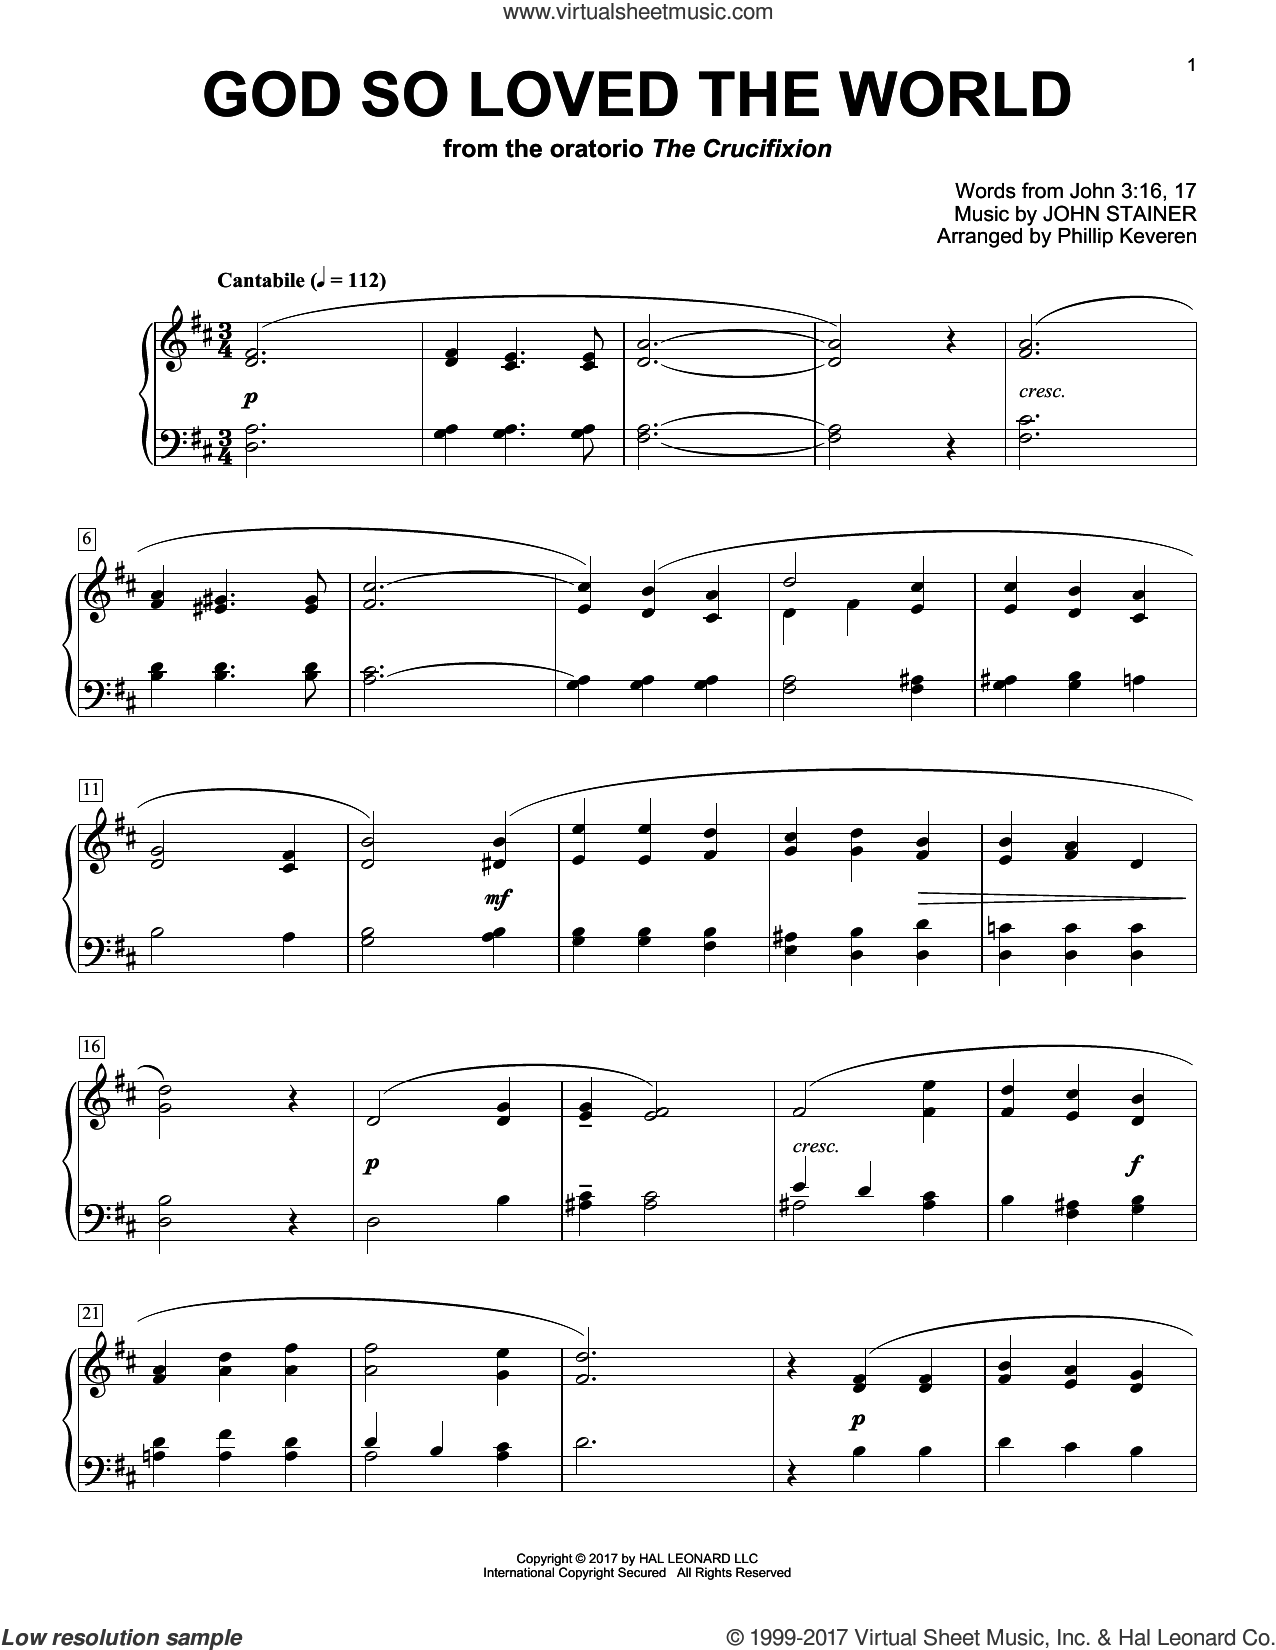 God So Loved The World sheet music for piano solo by John Stainer, Phillip Keveren and Miscellaneous. Score Image Preview.